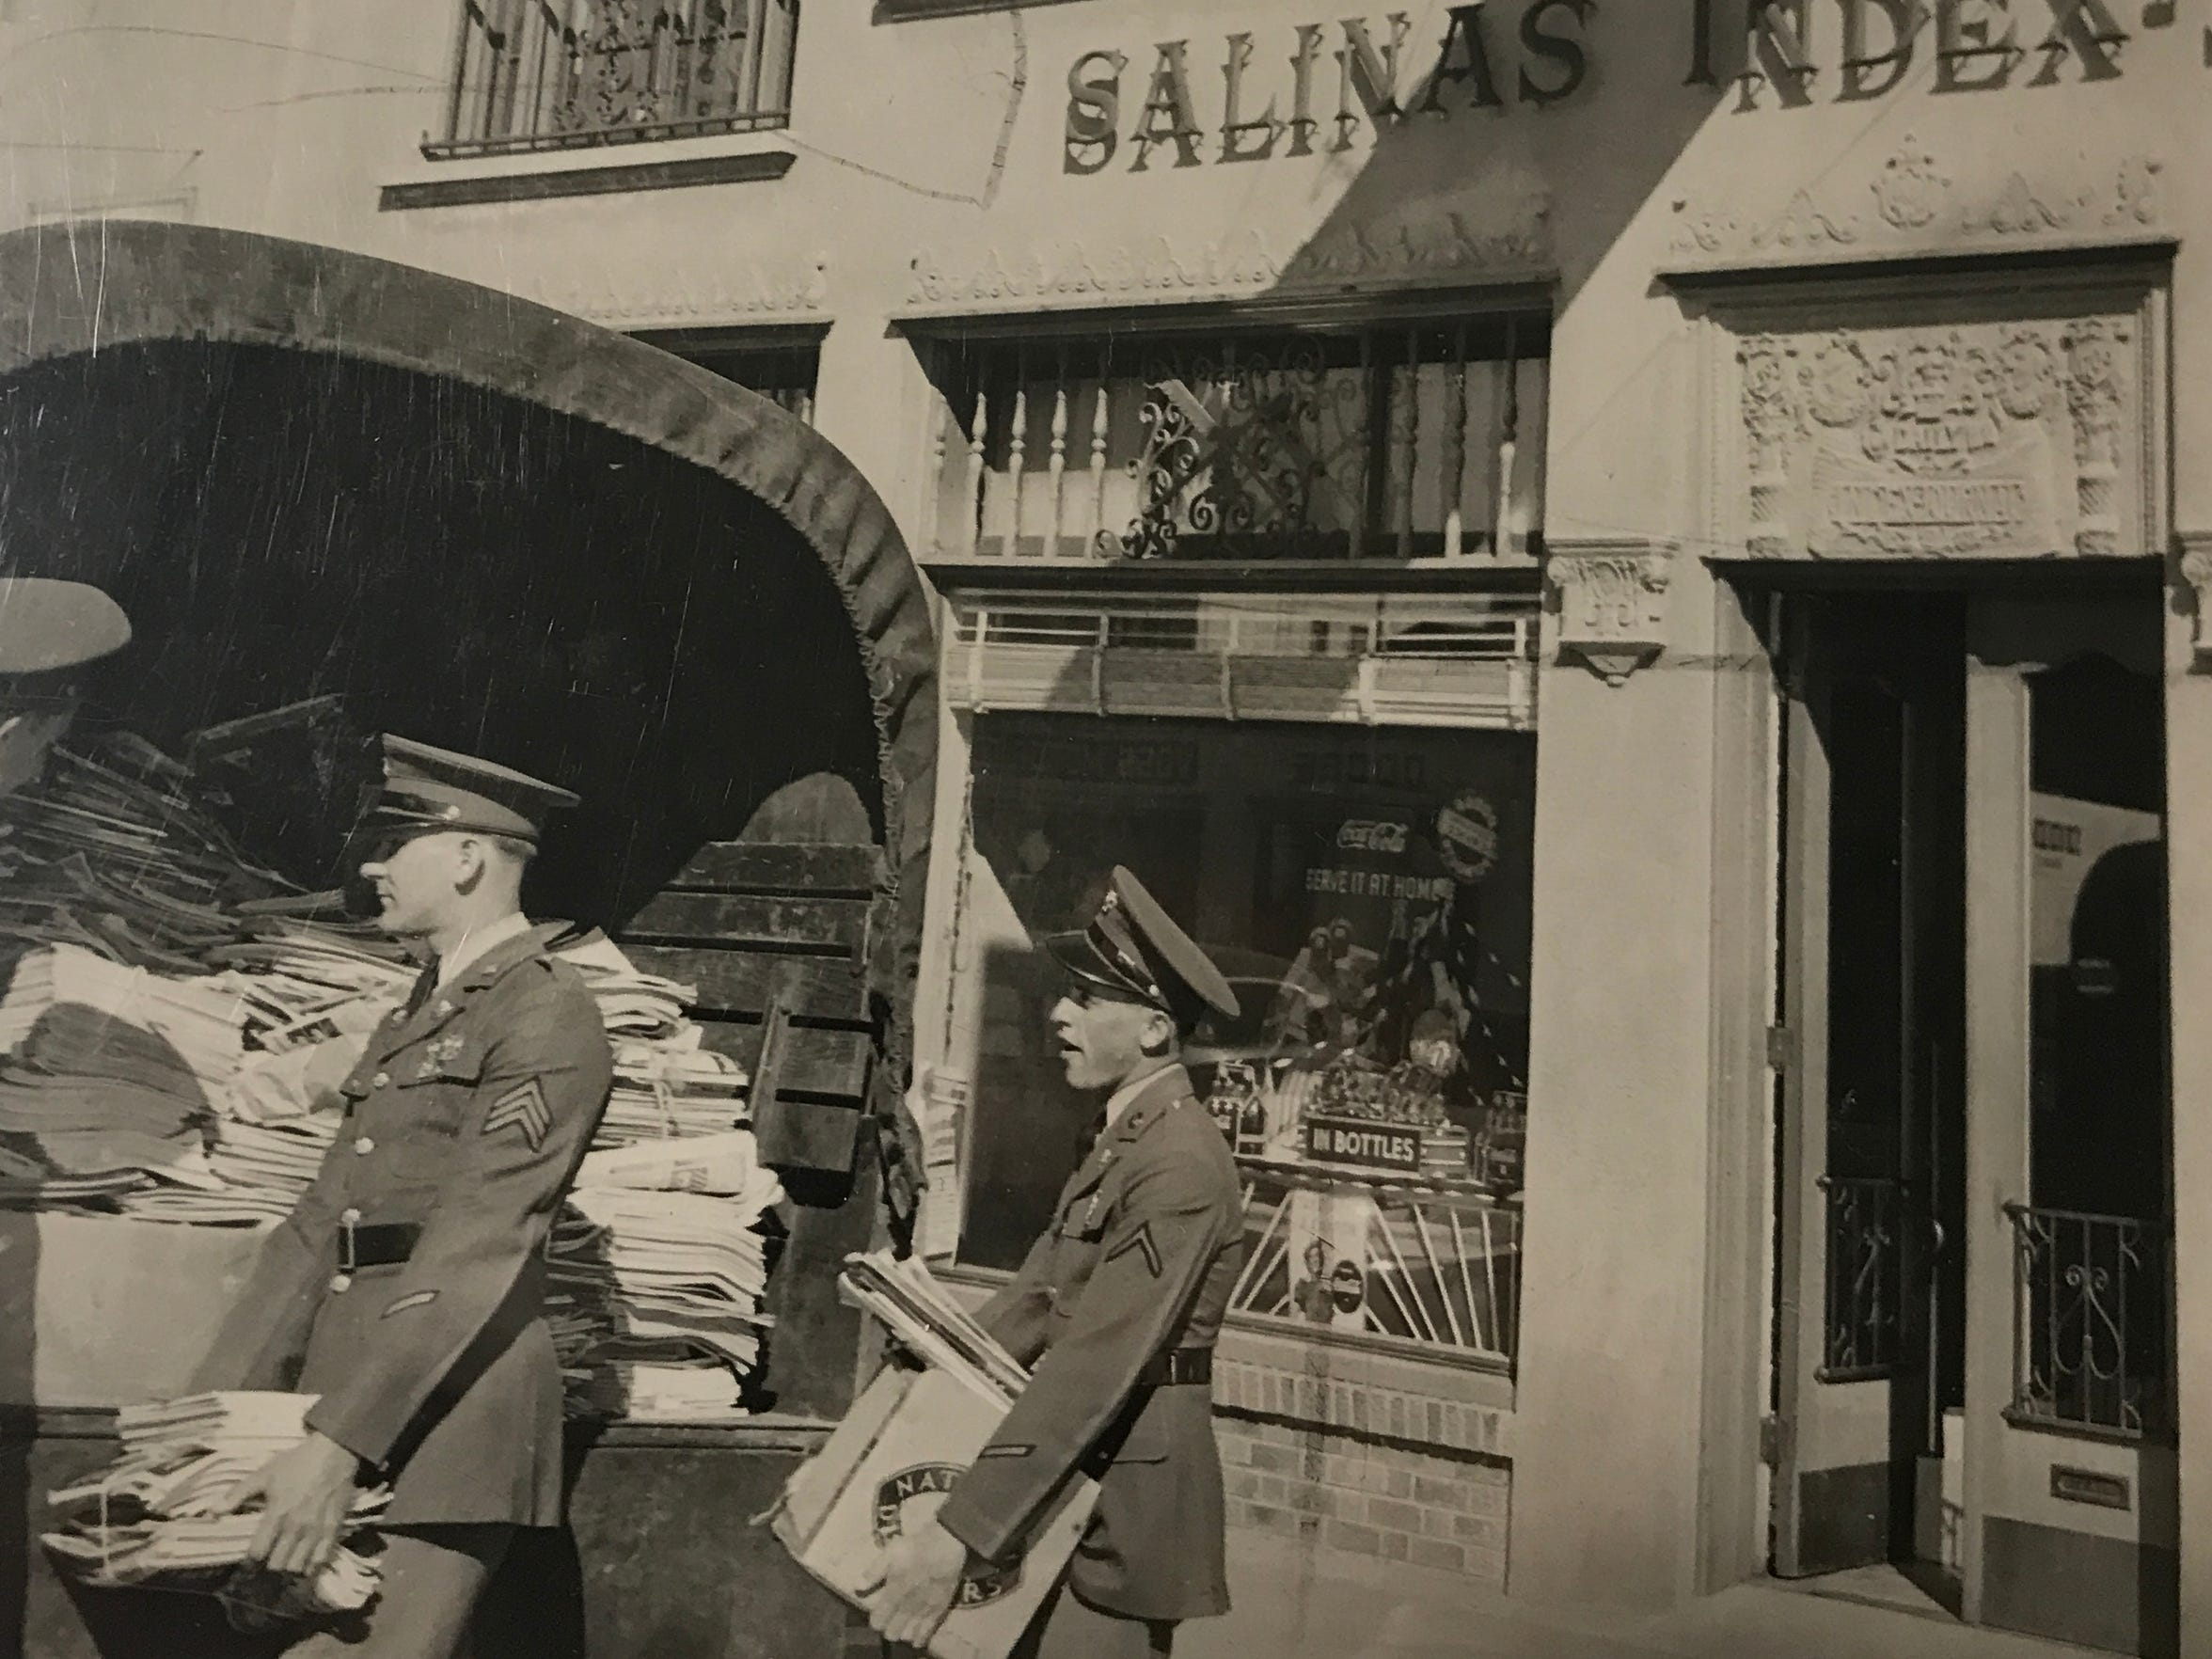 Men carry newspapers out from the Salinas Index during